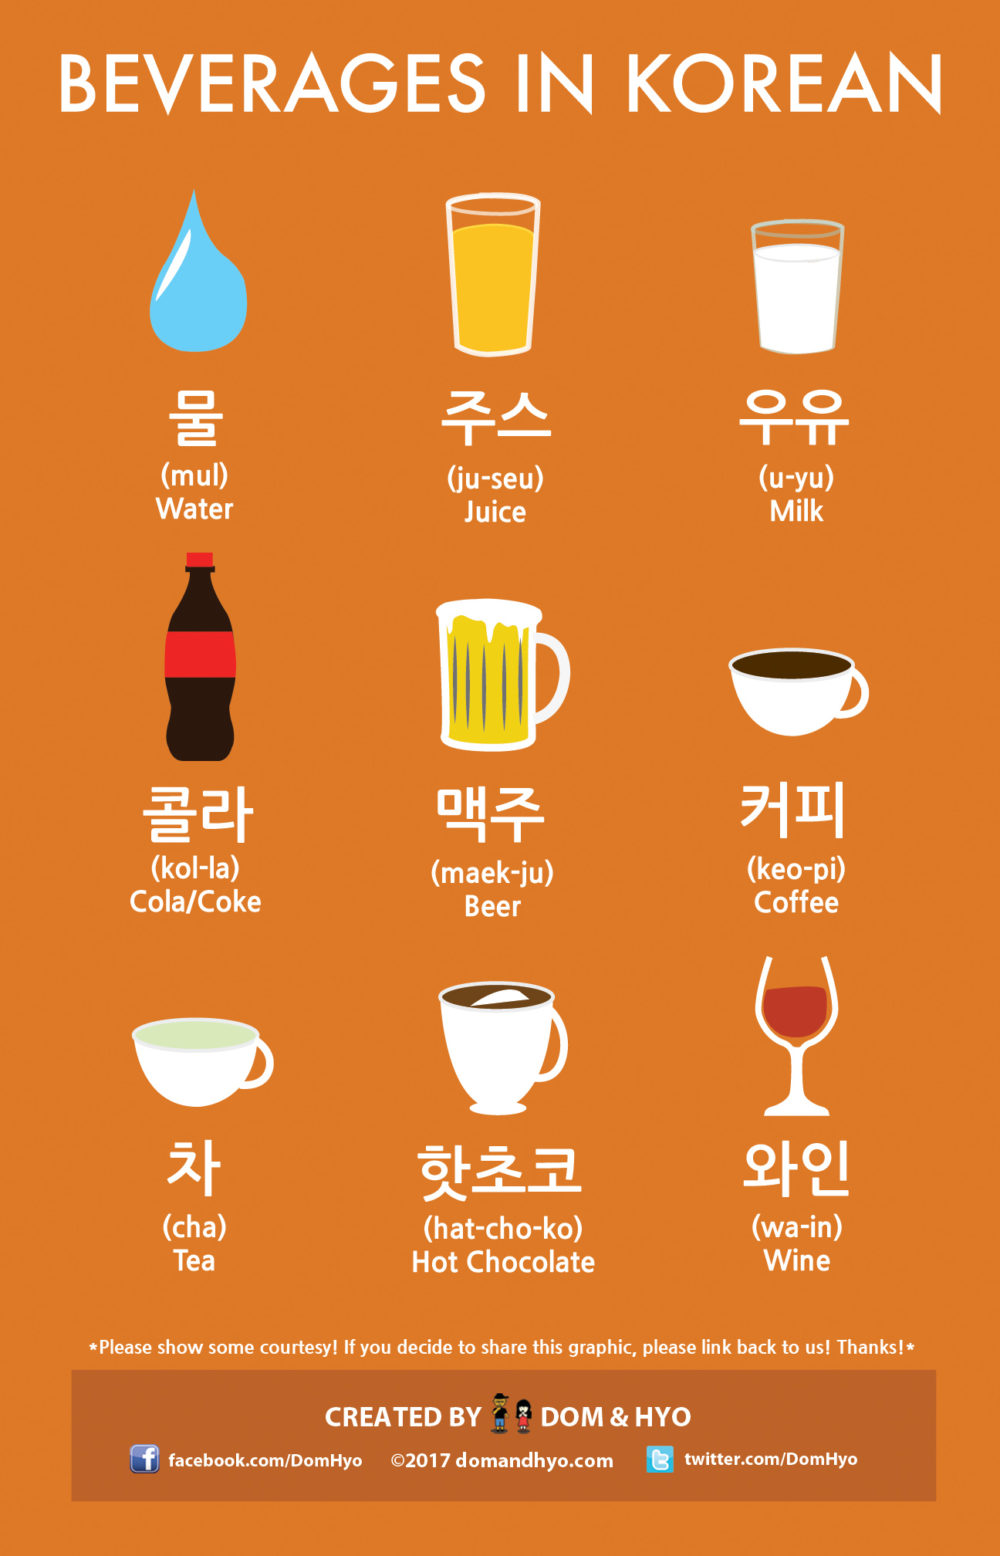 Korean Vocabulary: Beverages in Korean